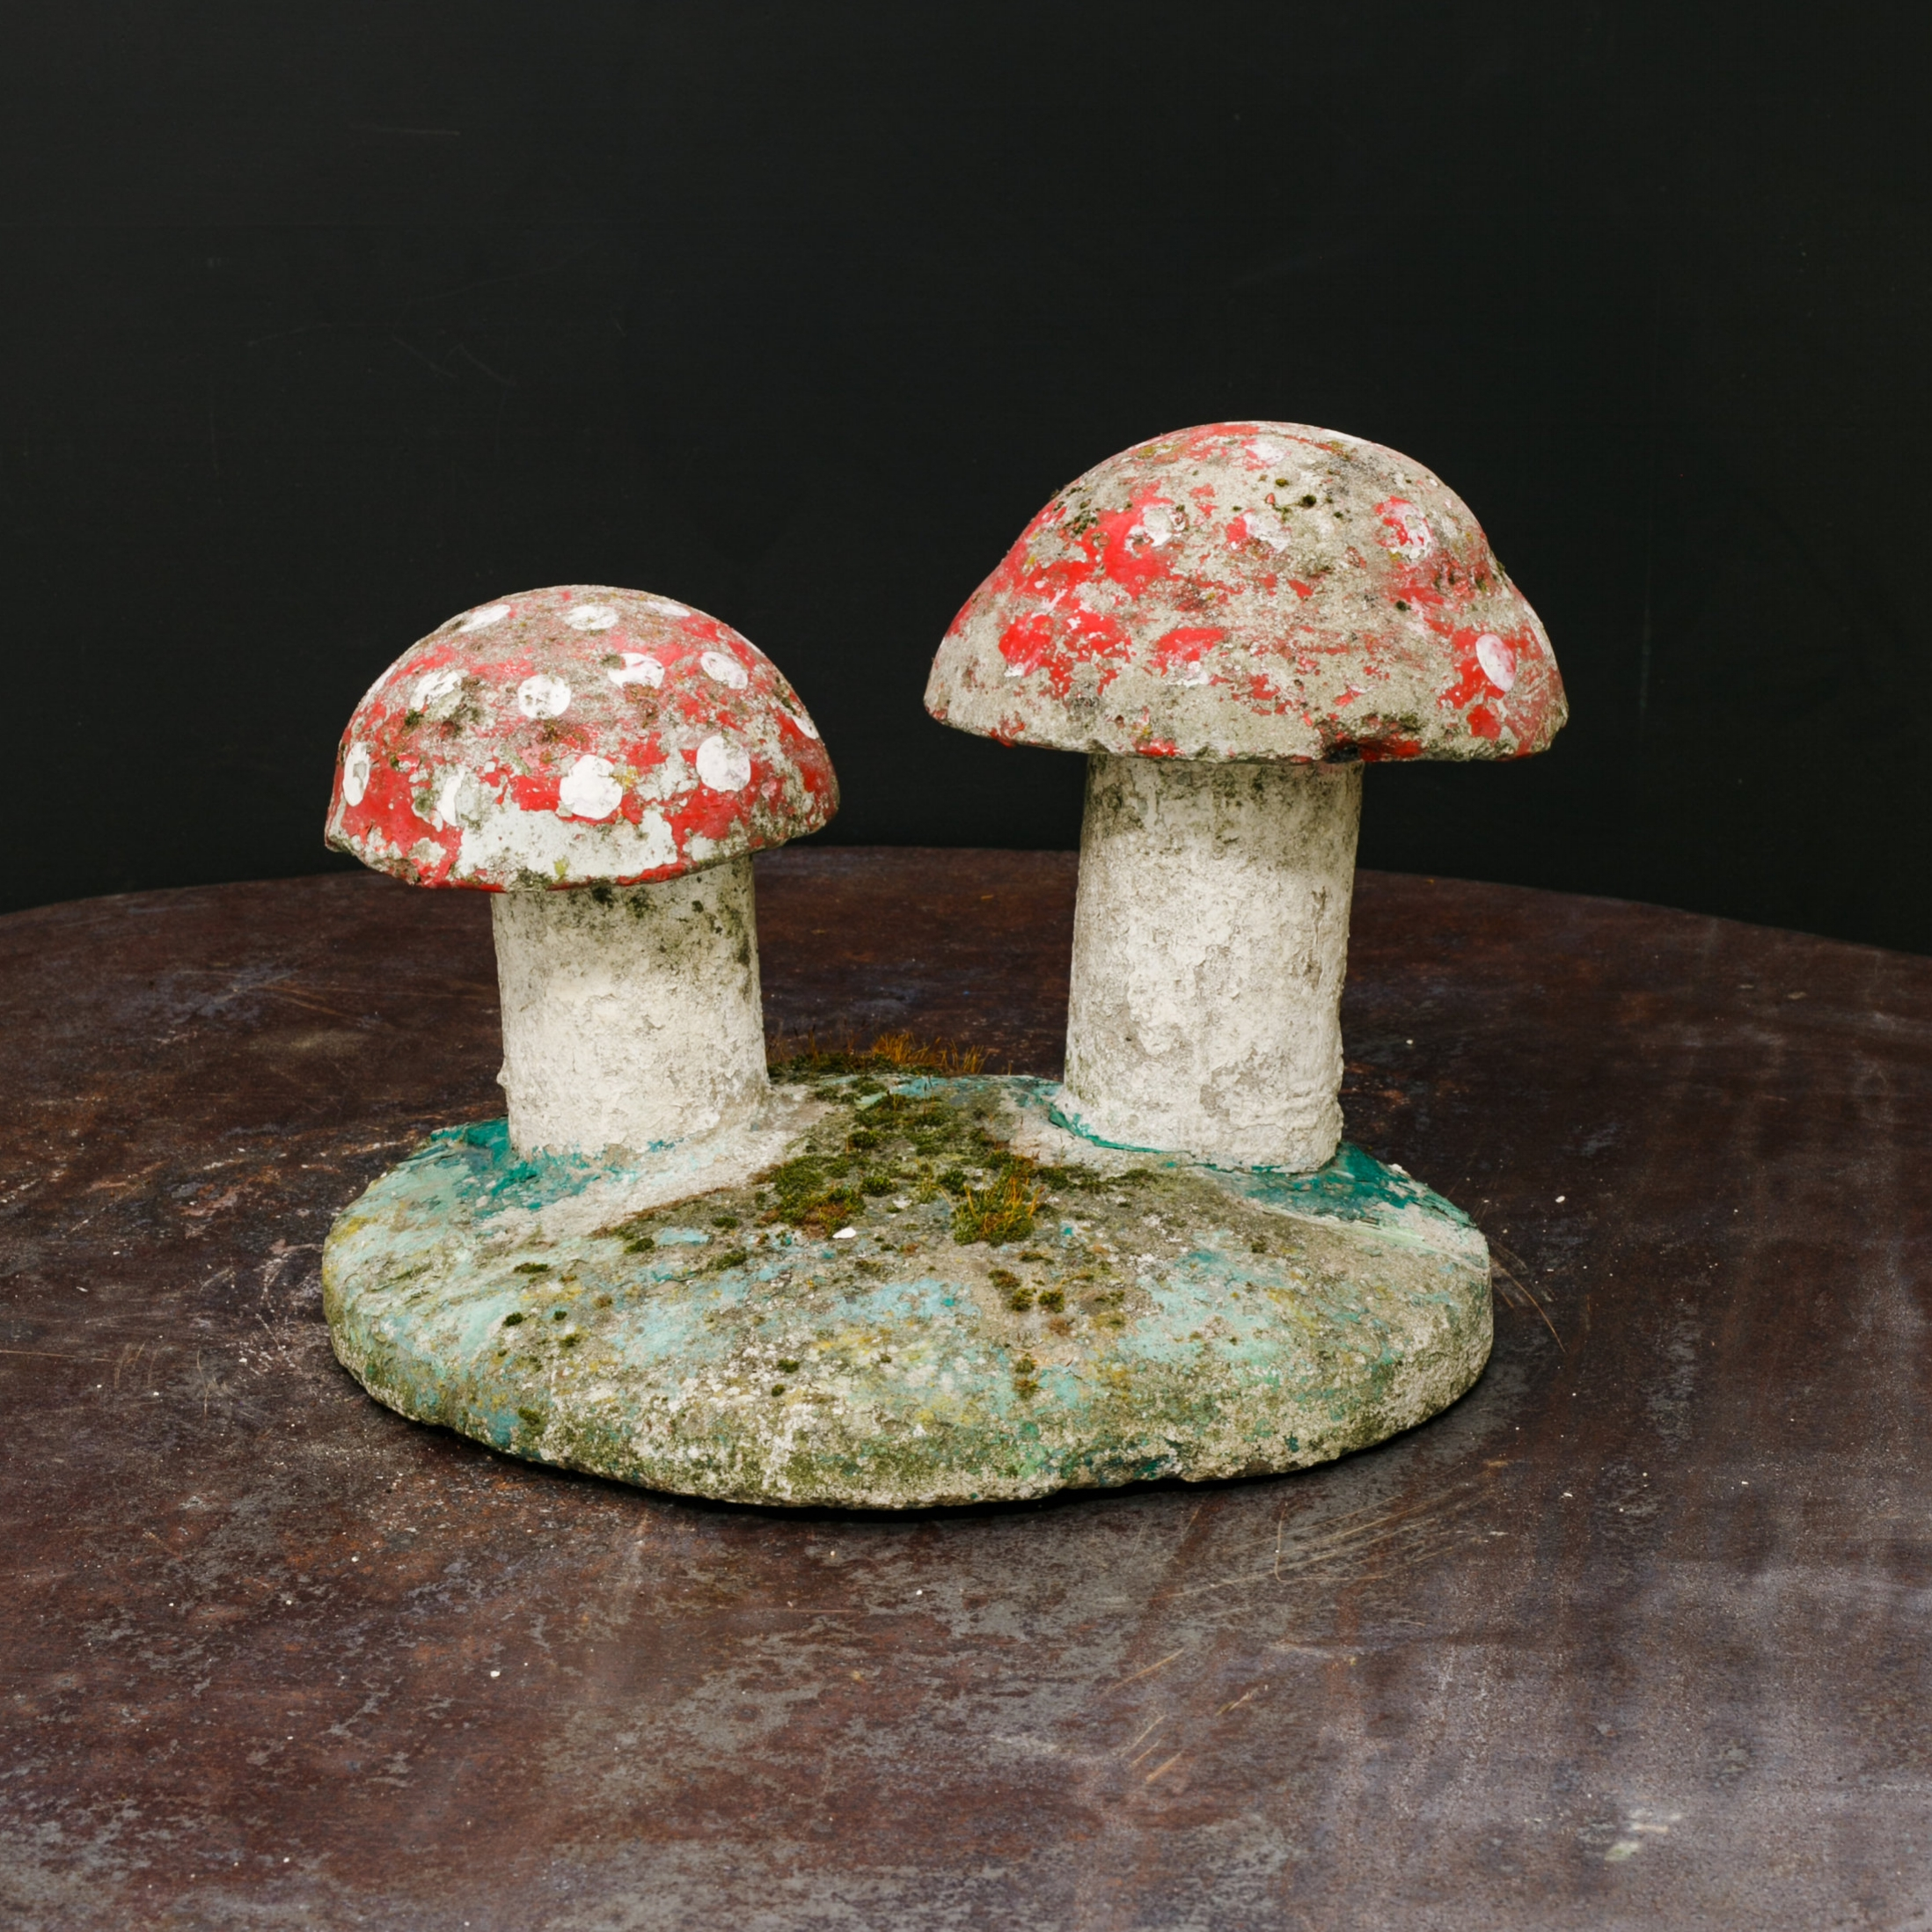 Vintage, Small Hand-Painted Concrete Toadstool Garden Sculpture